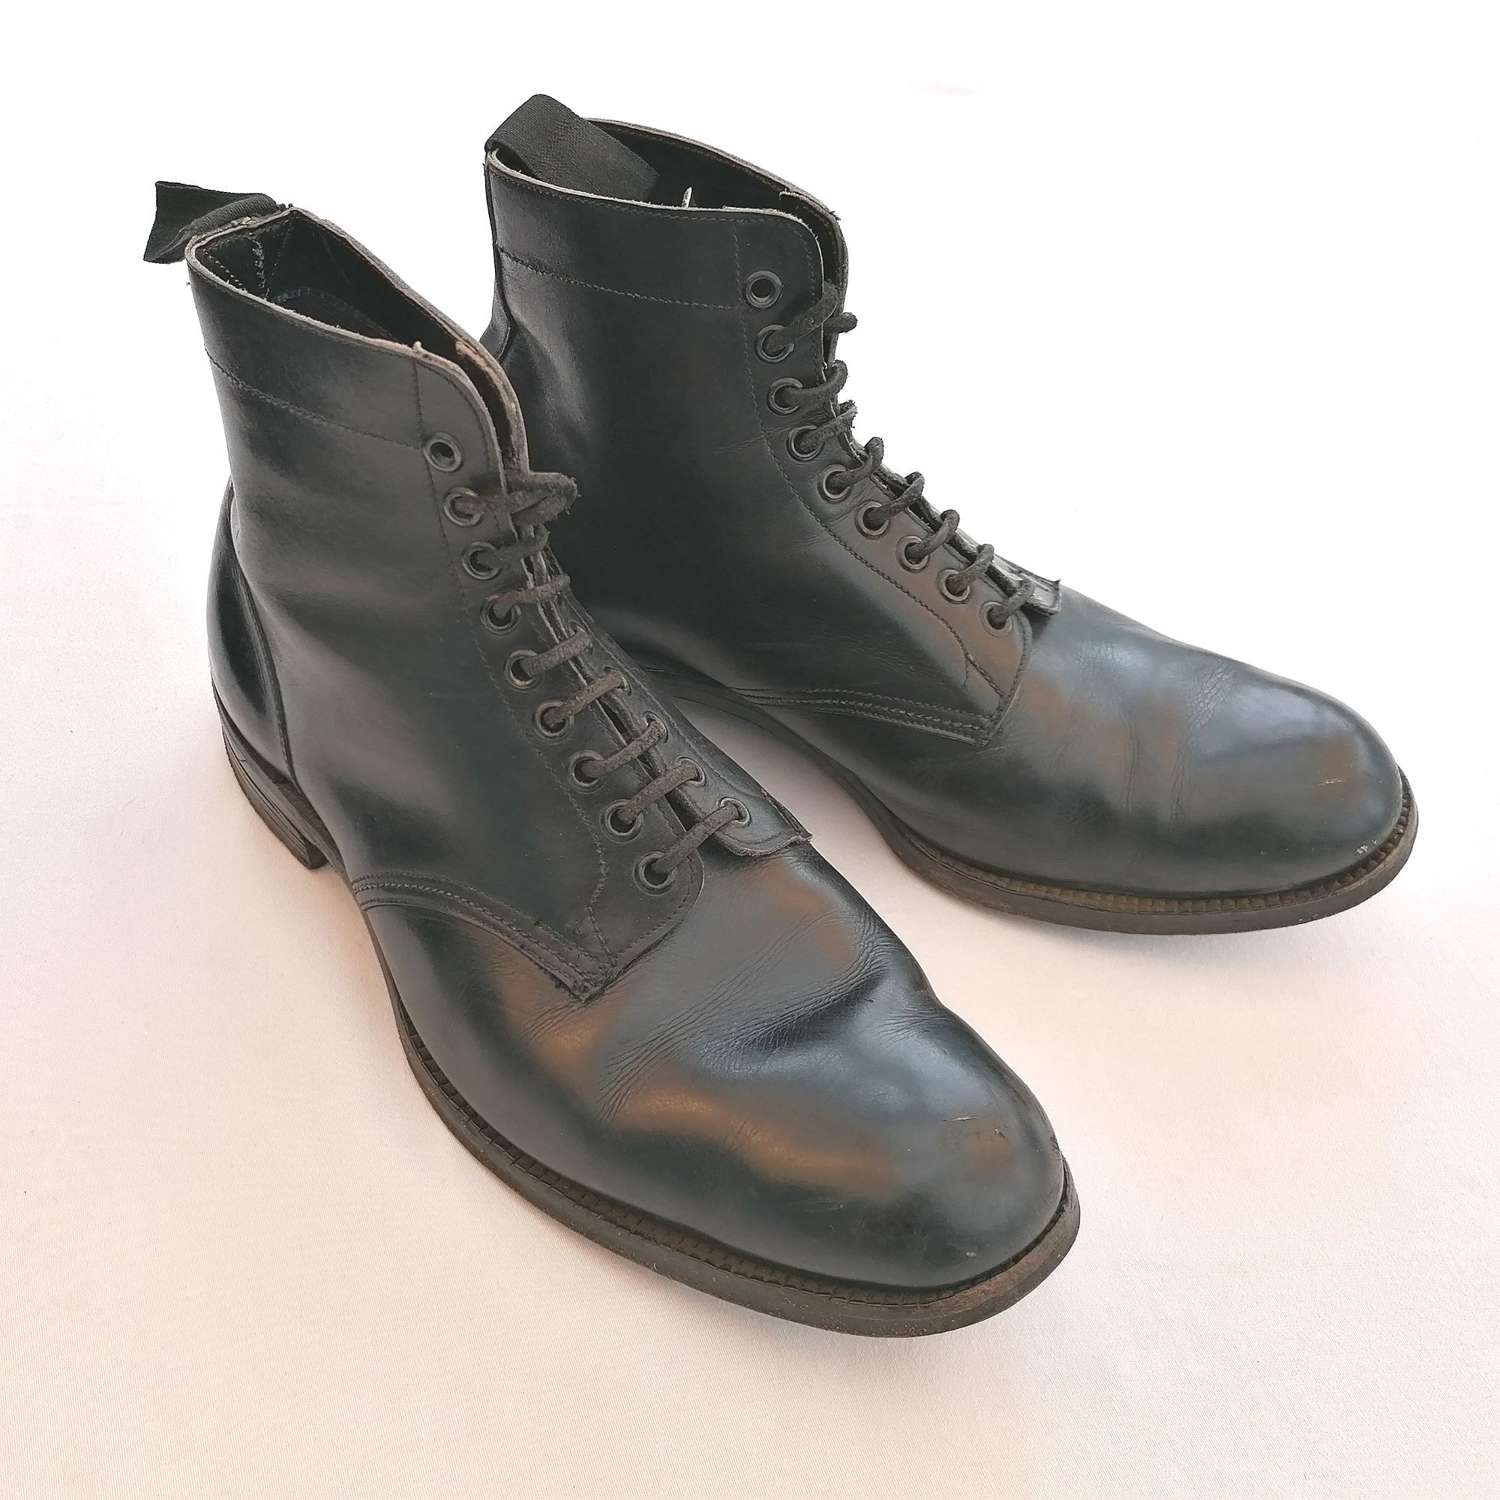 Pre-WW2 1936 RAF OA Air Ministry Ankle Boots